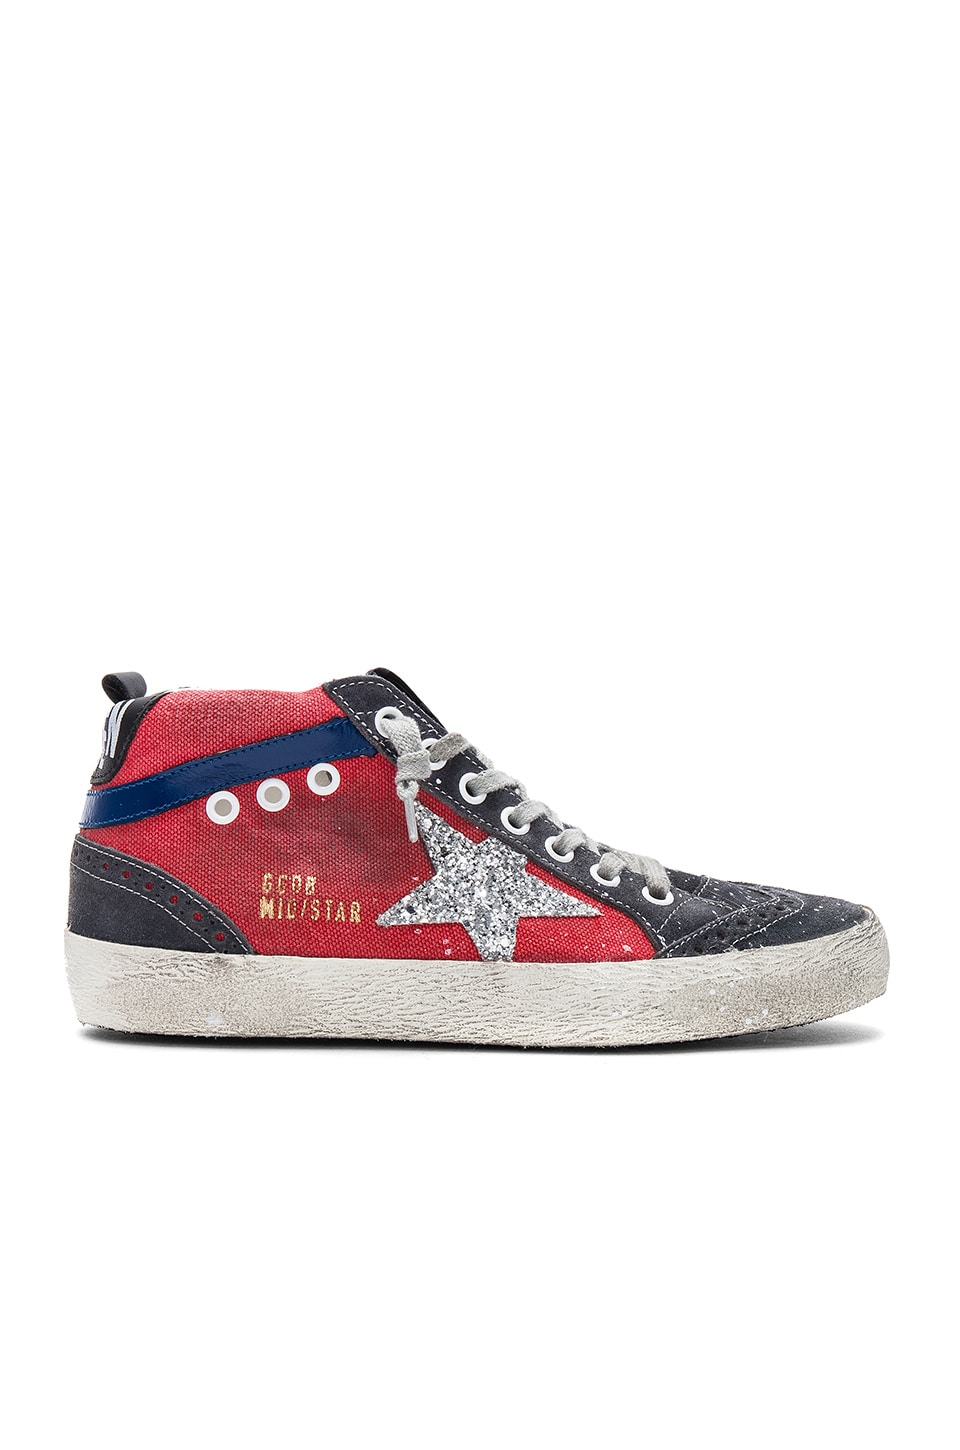 Golden Goose Mid Star Sneaker in Red Canvas & Glitter Star